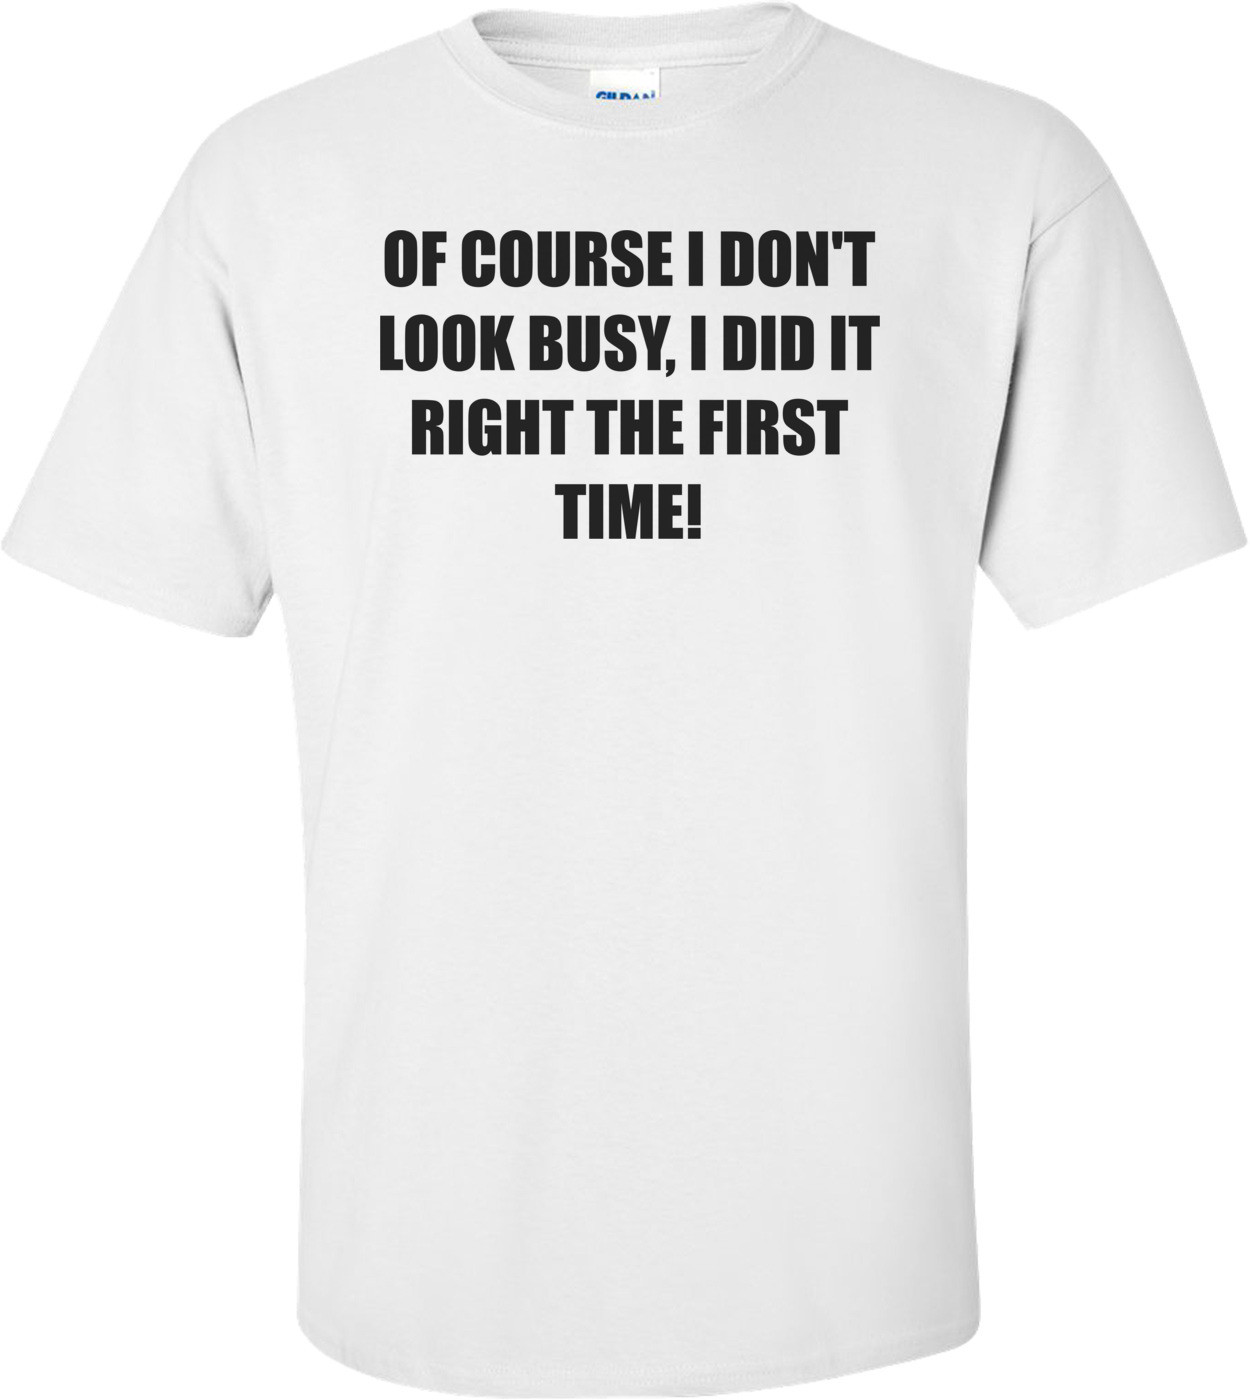 OF COURSE I DON'T LOOK BUSY, I DID IT RIGHT THE FIRST TIME! Shirt